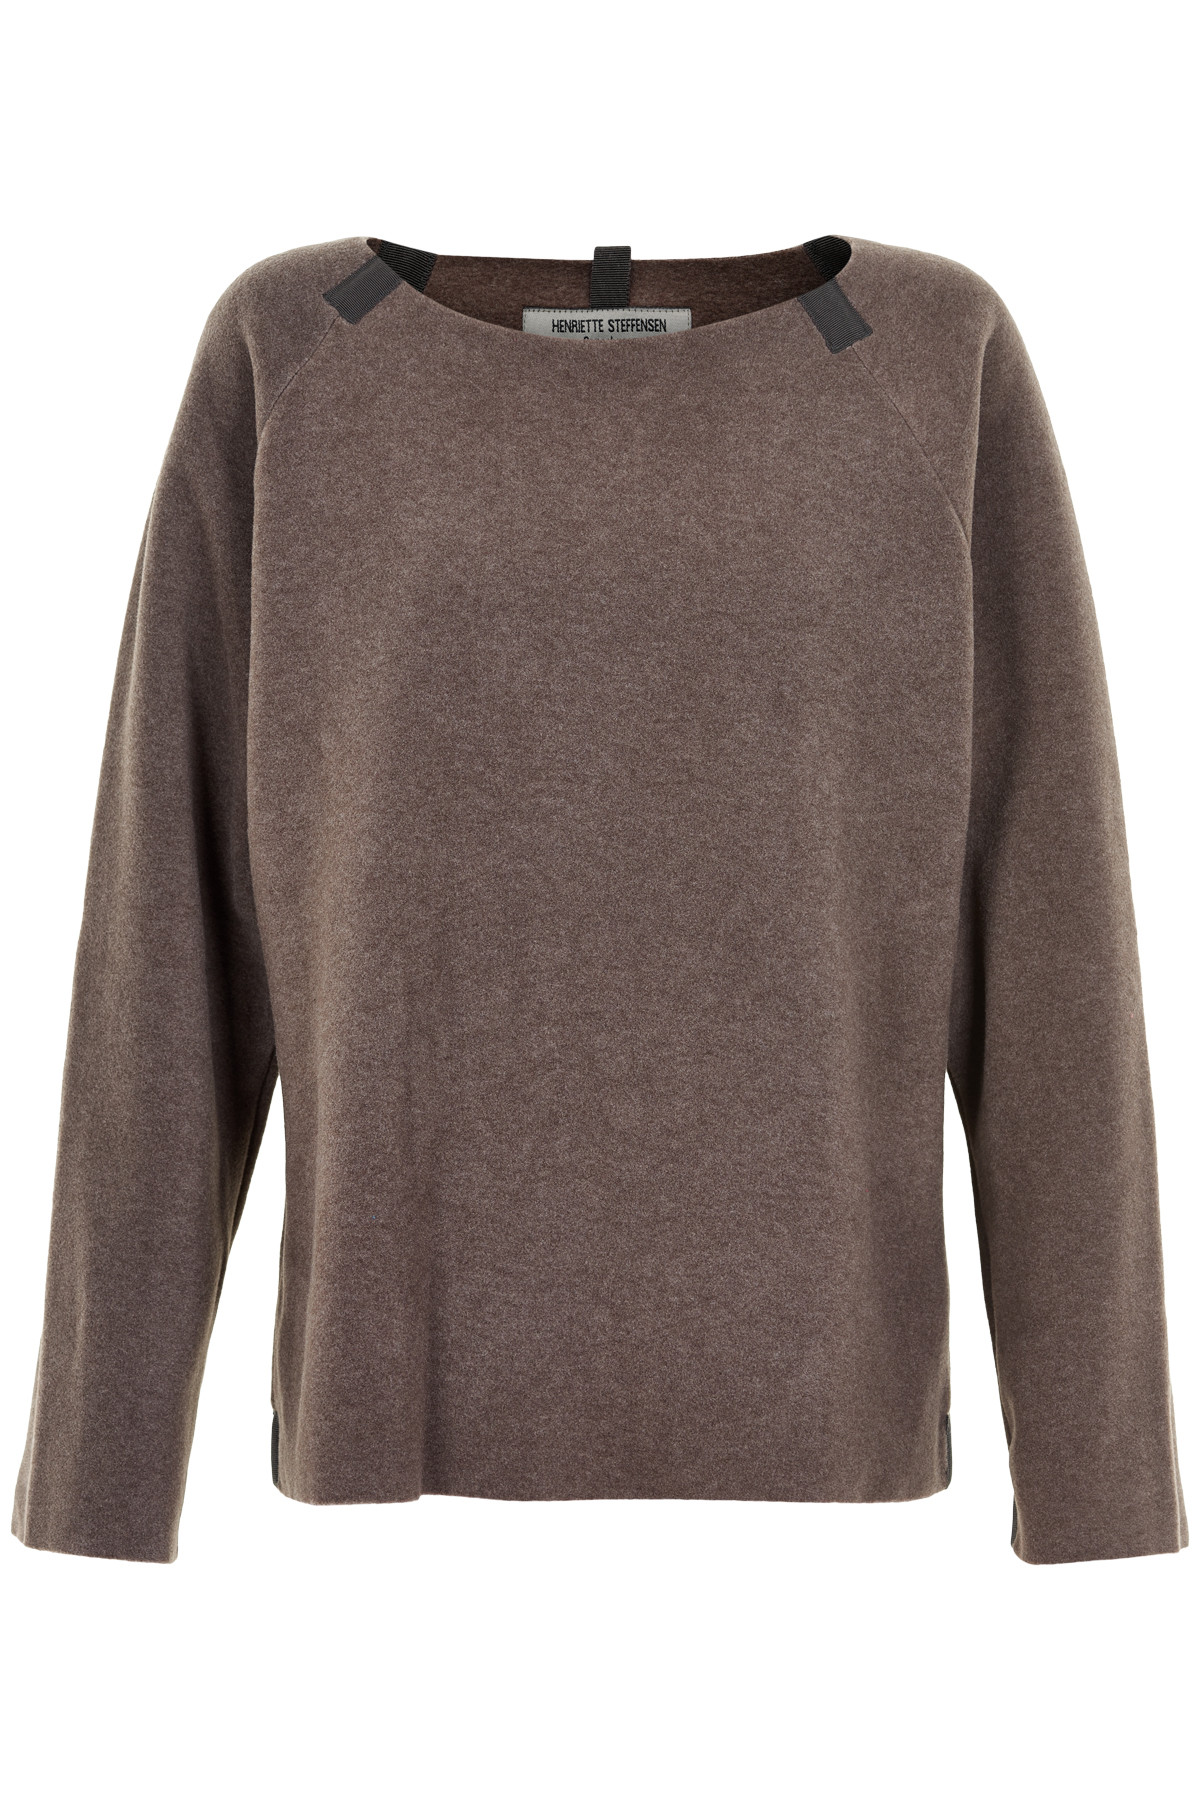 Image of   HENRIETTE STEFFENSEN Copenhagen 1290 SWEATER BROWN (Brown, XS)